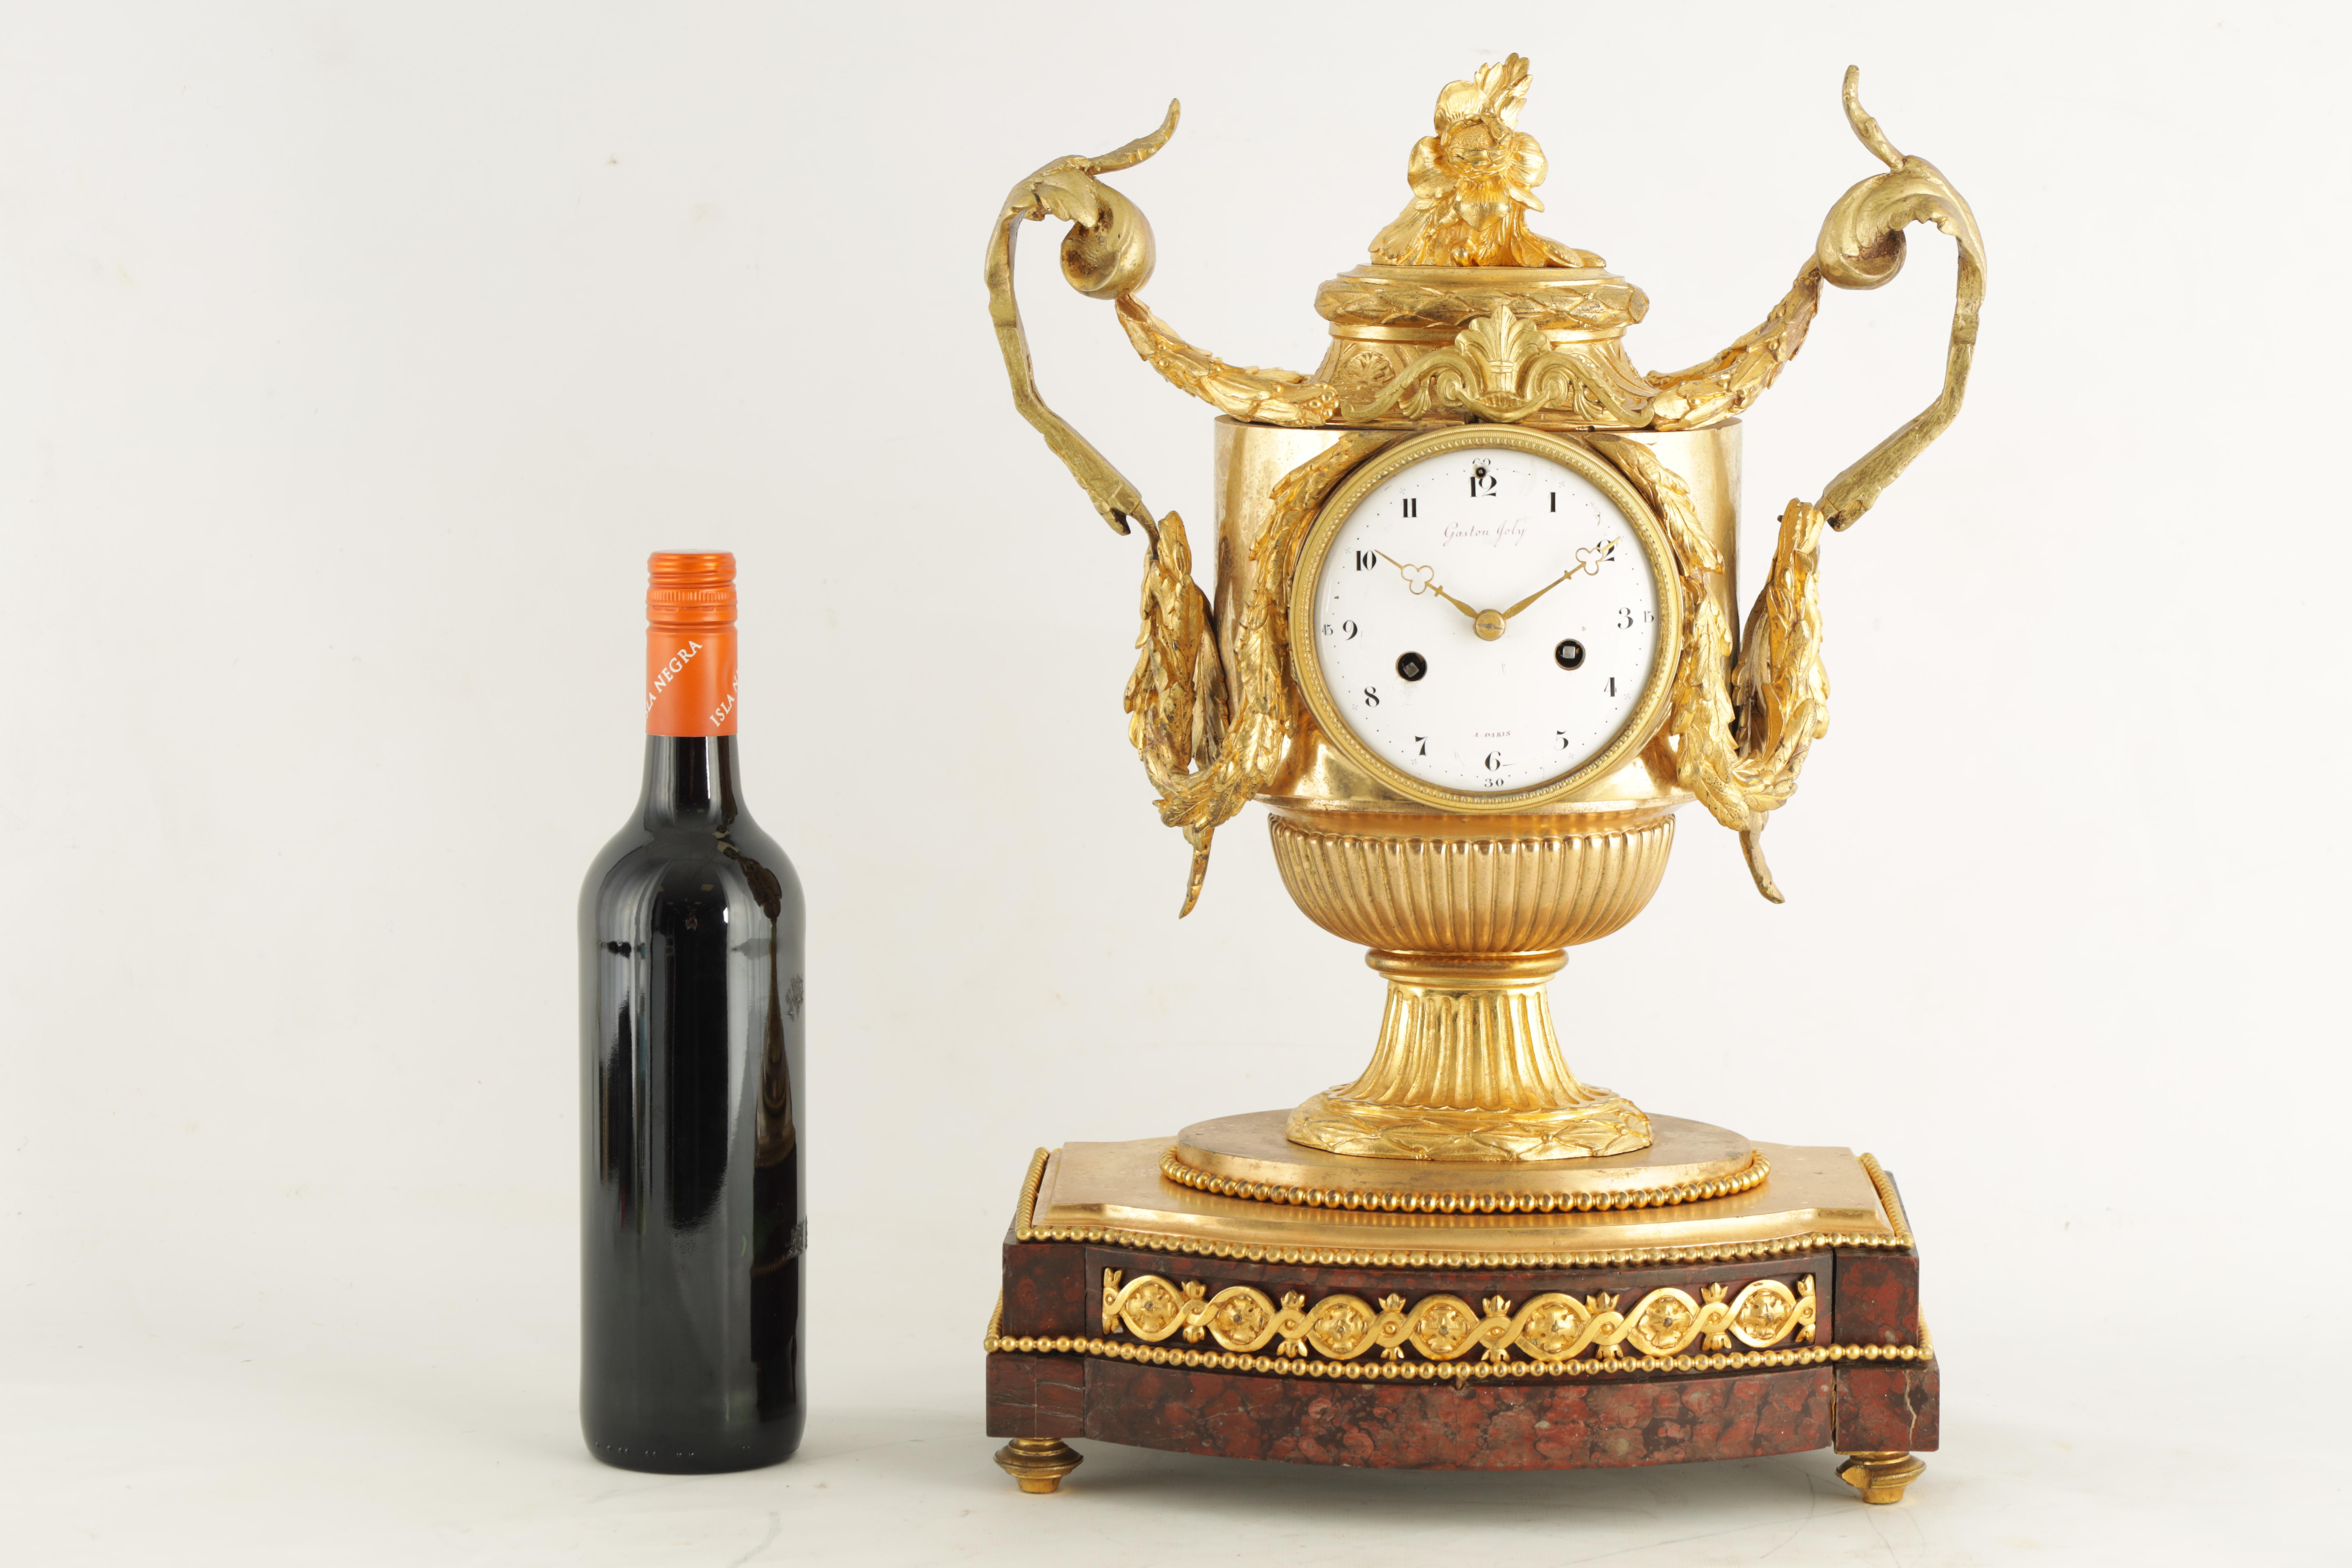 GASTON JOLY, A PARIS AN IMPRESSIVE EARLY 19TH CENTURY FRENCH ORMOLU AND ROUGE MARBLE URN SHAPED - Image 4 of 7